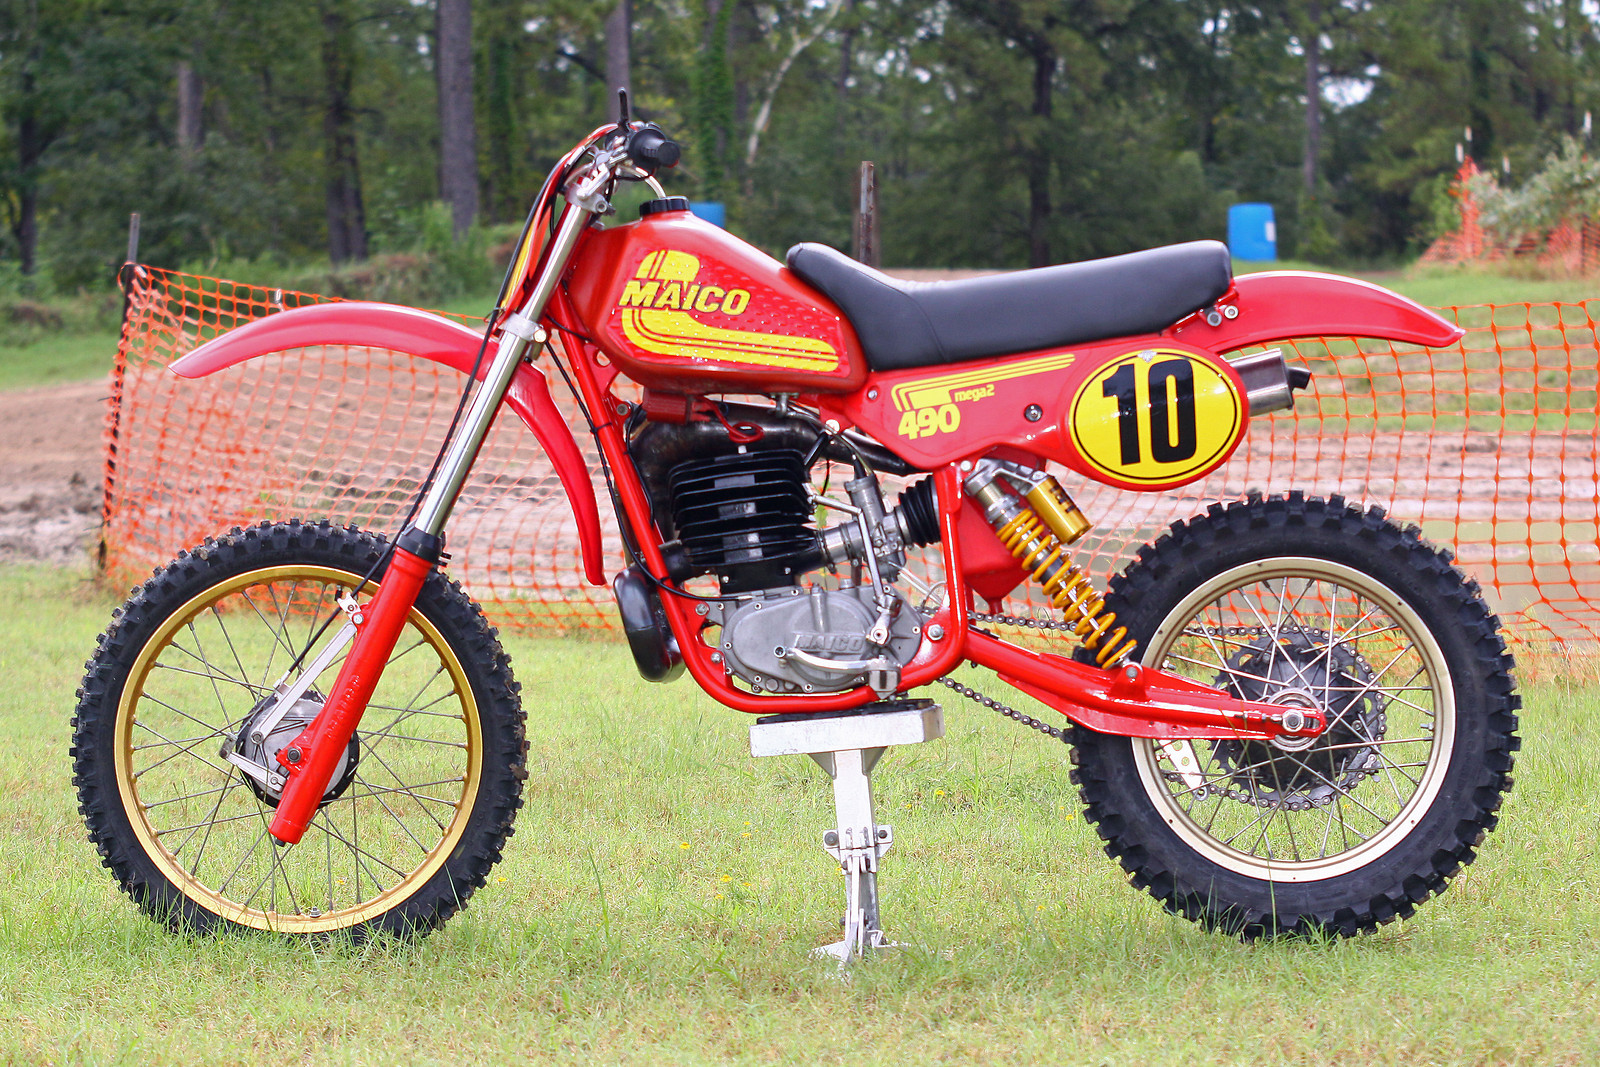 490 at Rio1 - bigmaico - Motocross Pictures - Vital MX